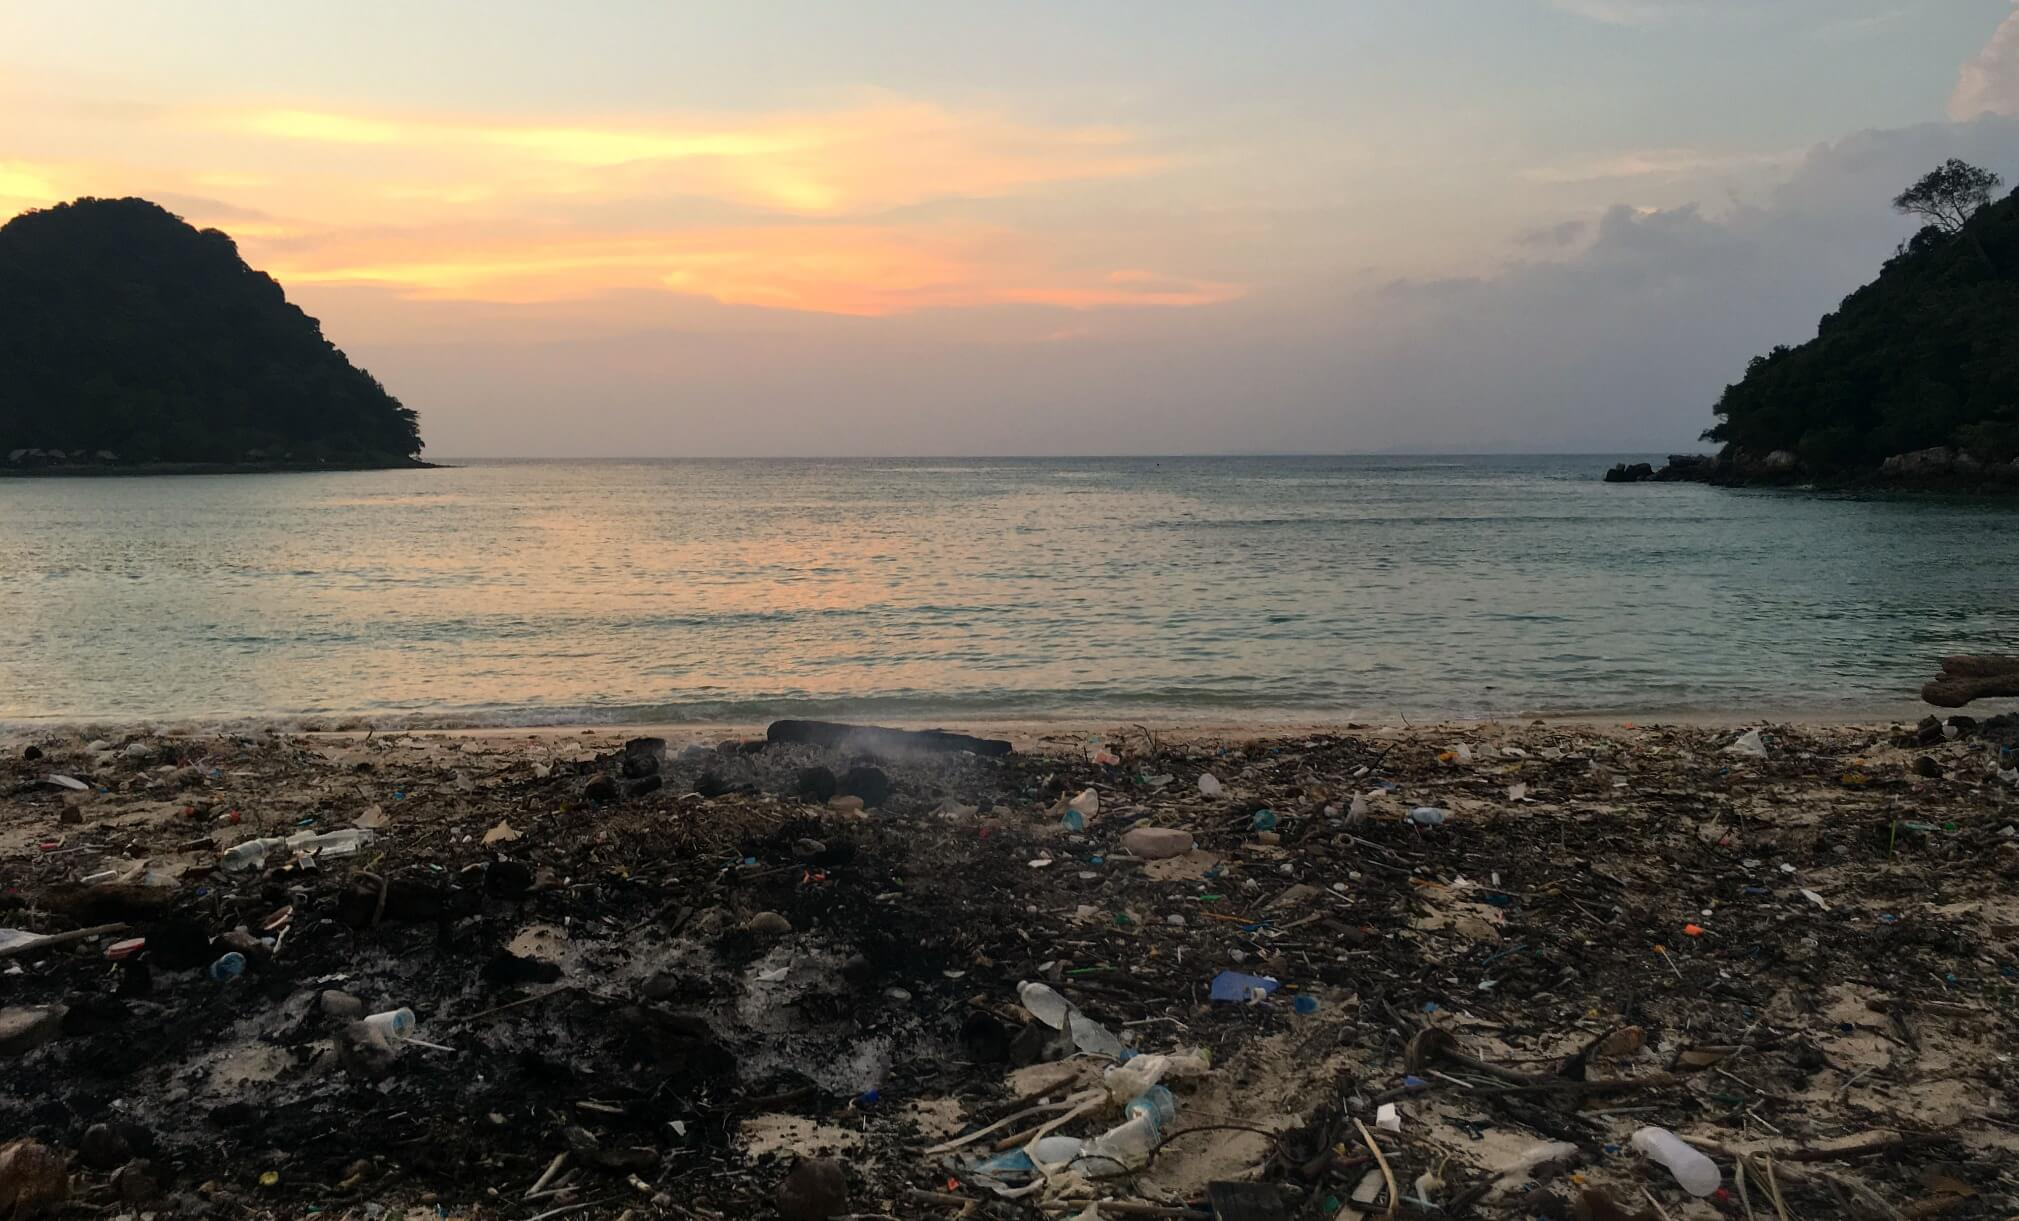 Phi Phi Islands - Loh Lana Bay and water pollution problems